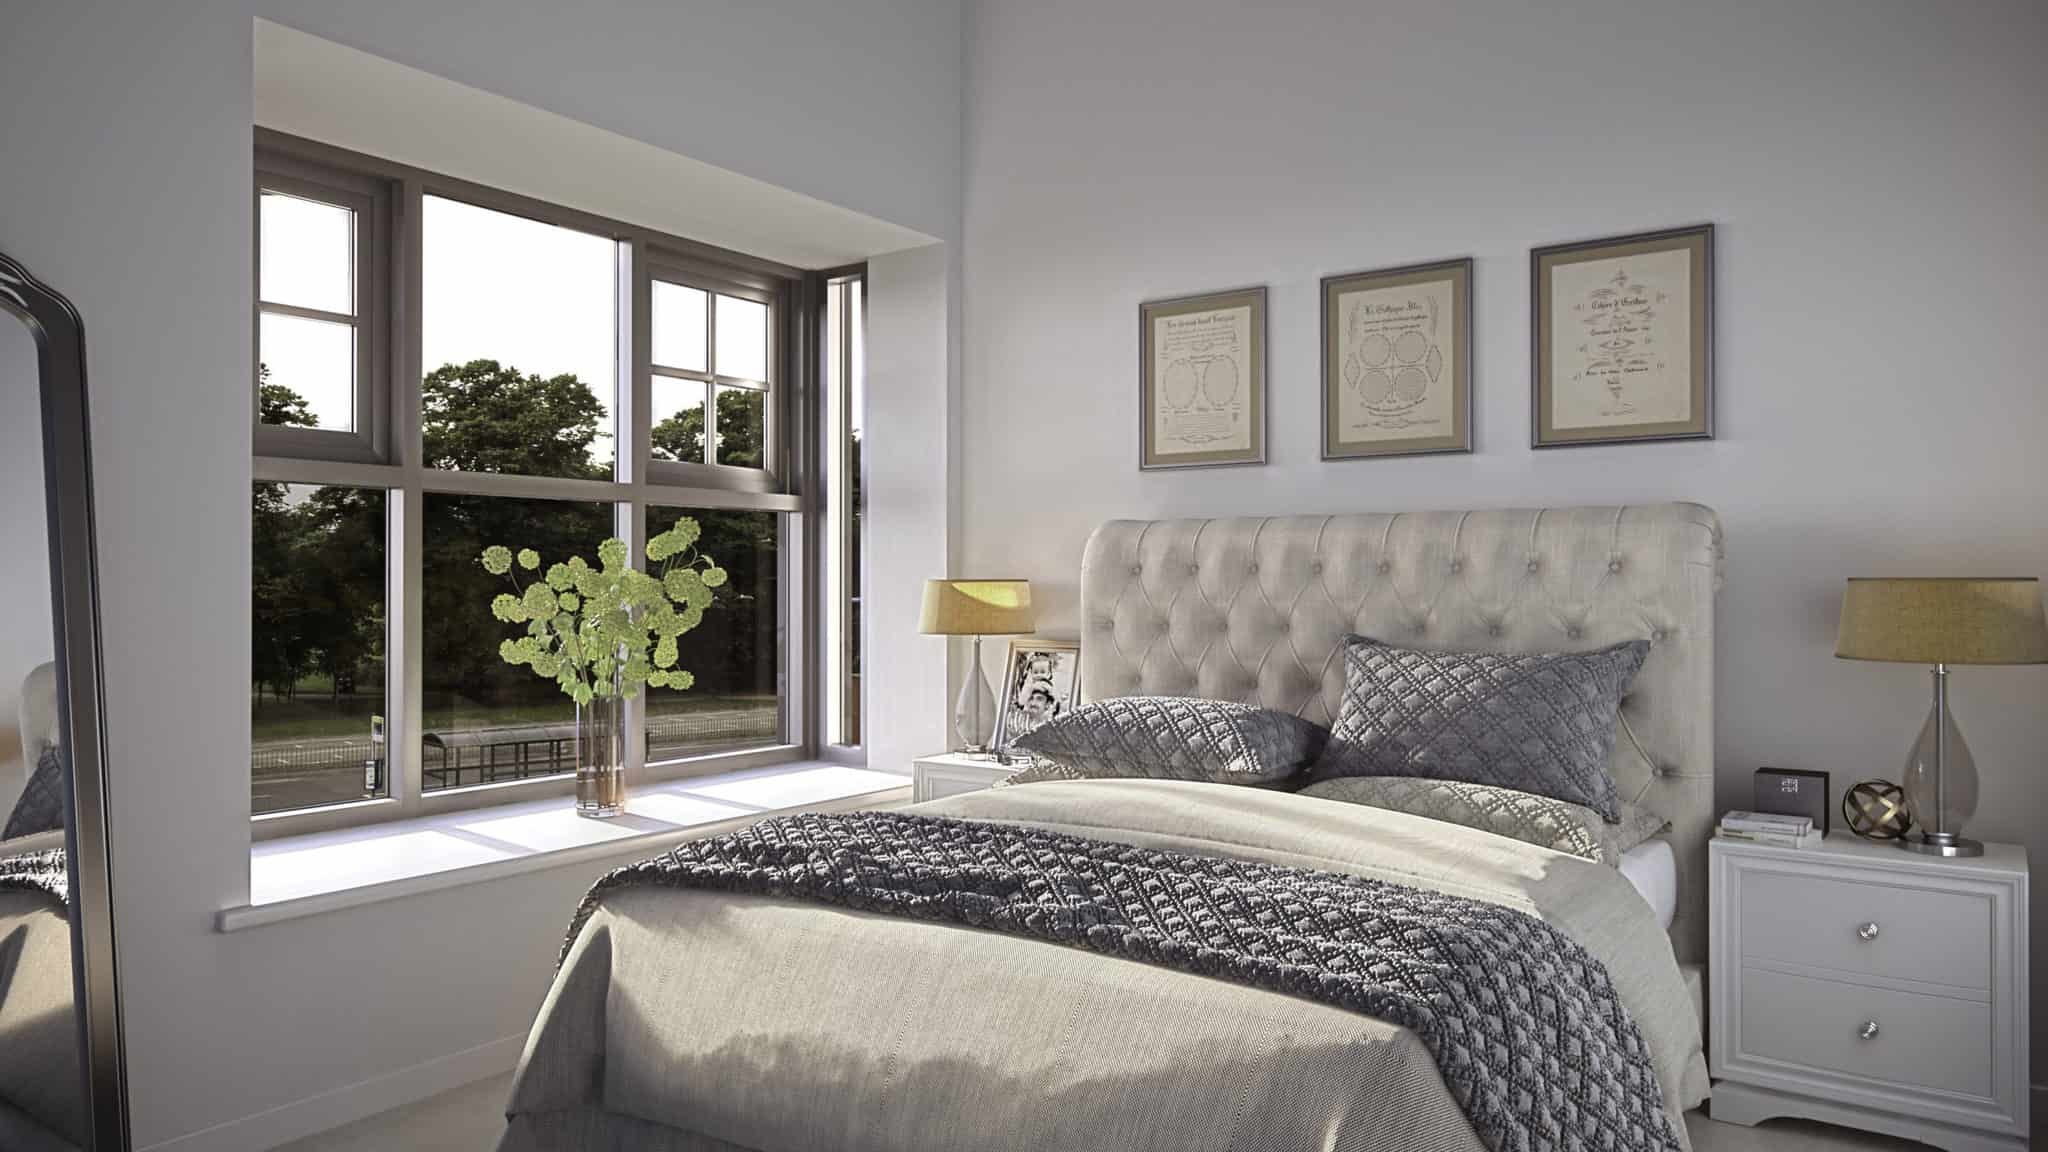 Hampton House Southampton Interior: Commercial to Residential Property Conversion Apartment